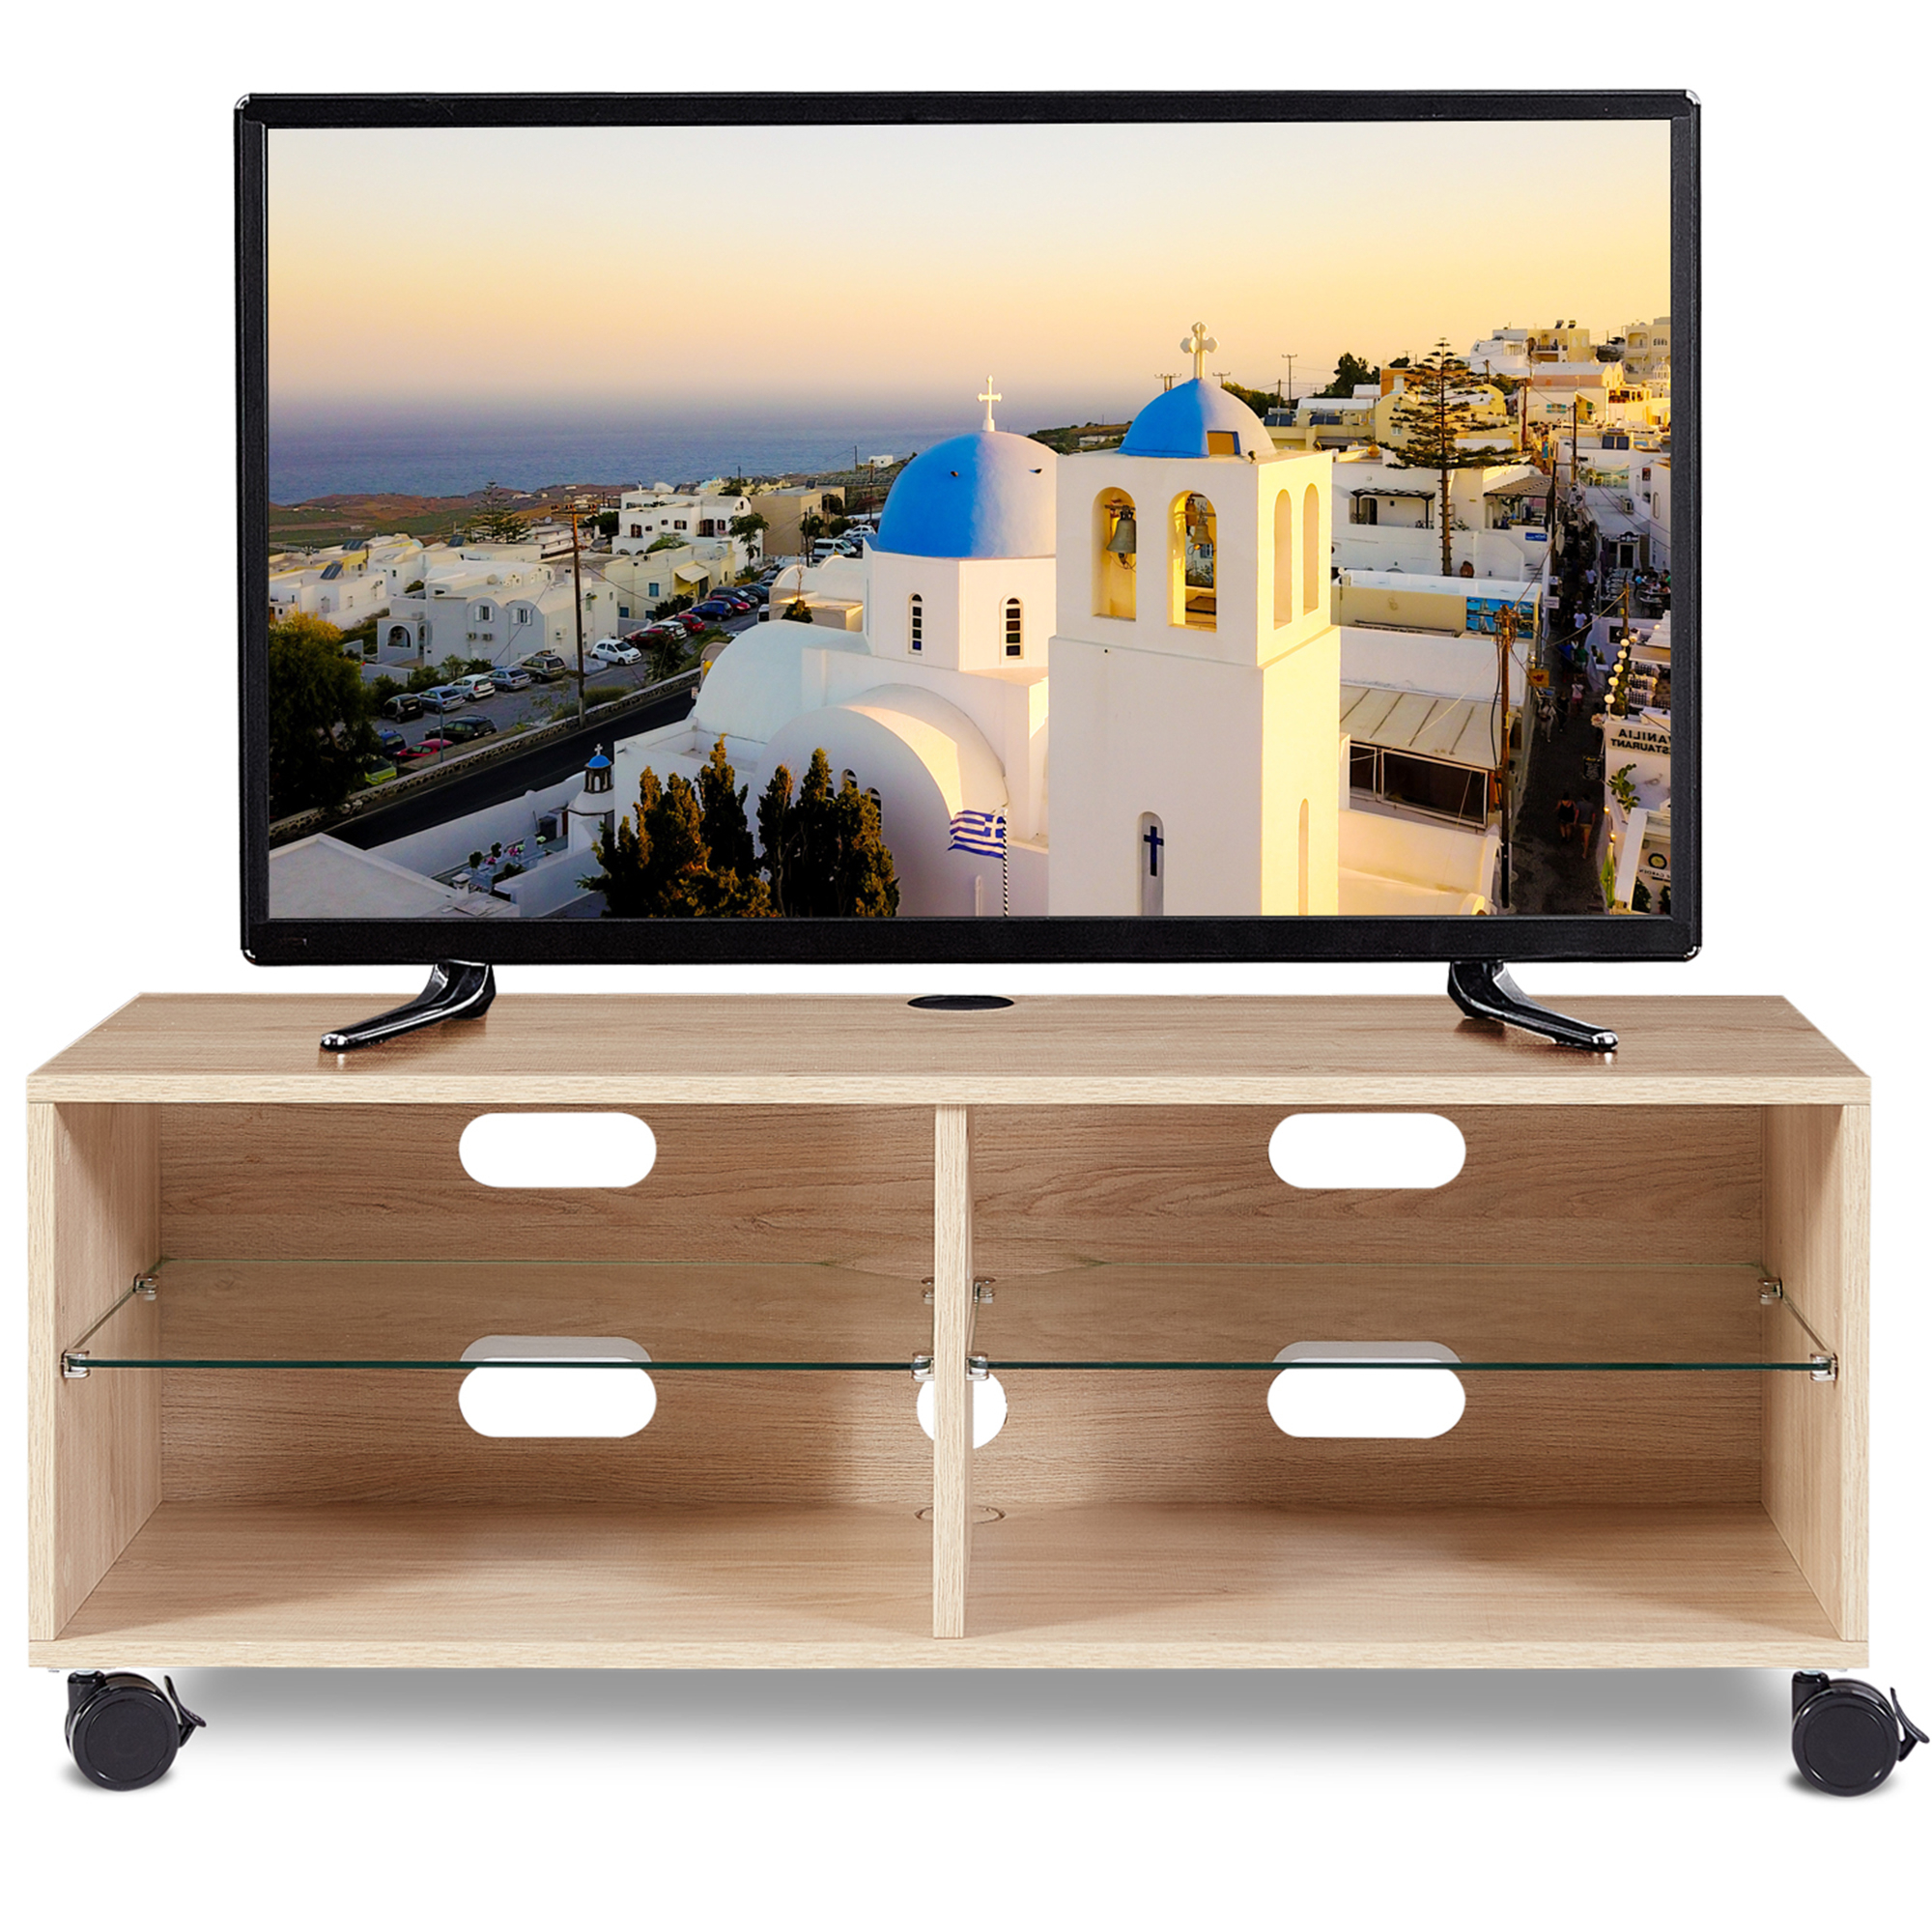 Famous Rustic Country Tv Stands In Weathered Pine Finish With Rfiver Rustic Oak Wood Tv Stand For 26 To 50 Inch Tvs Oak (View 8 of 10)